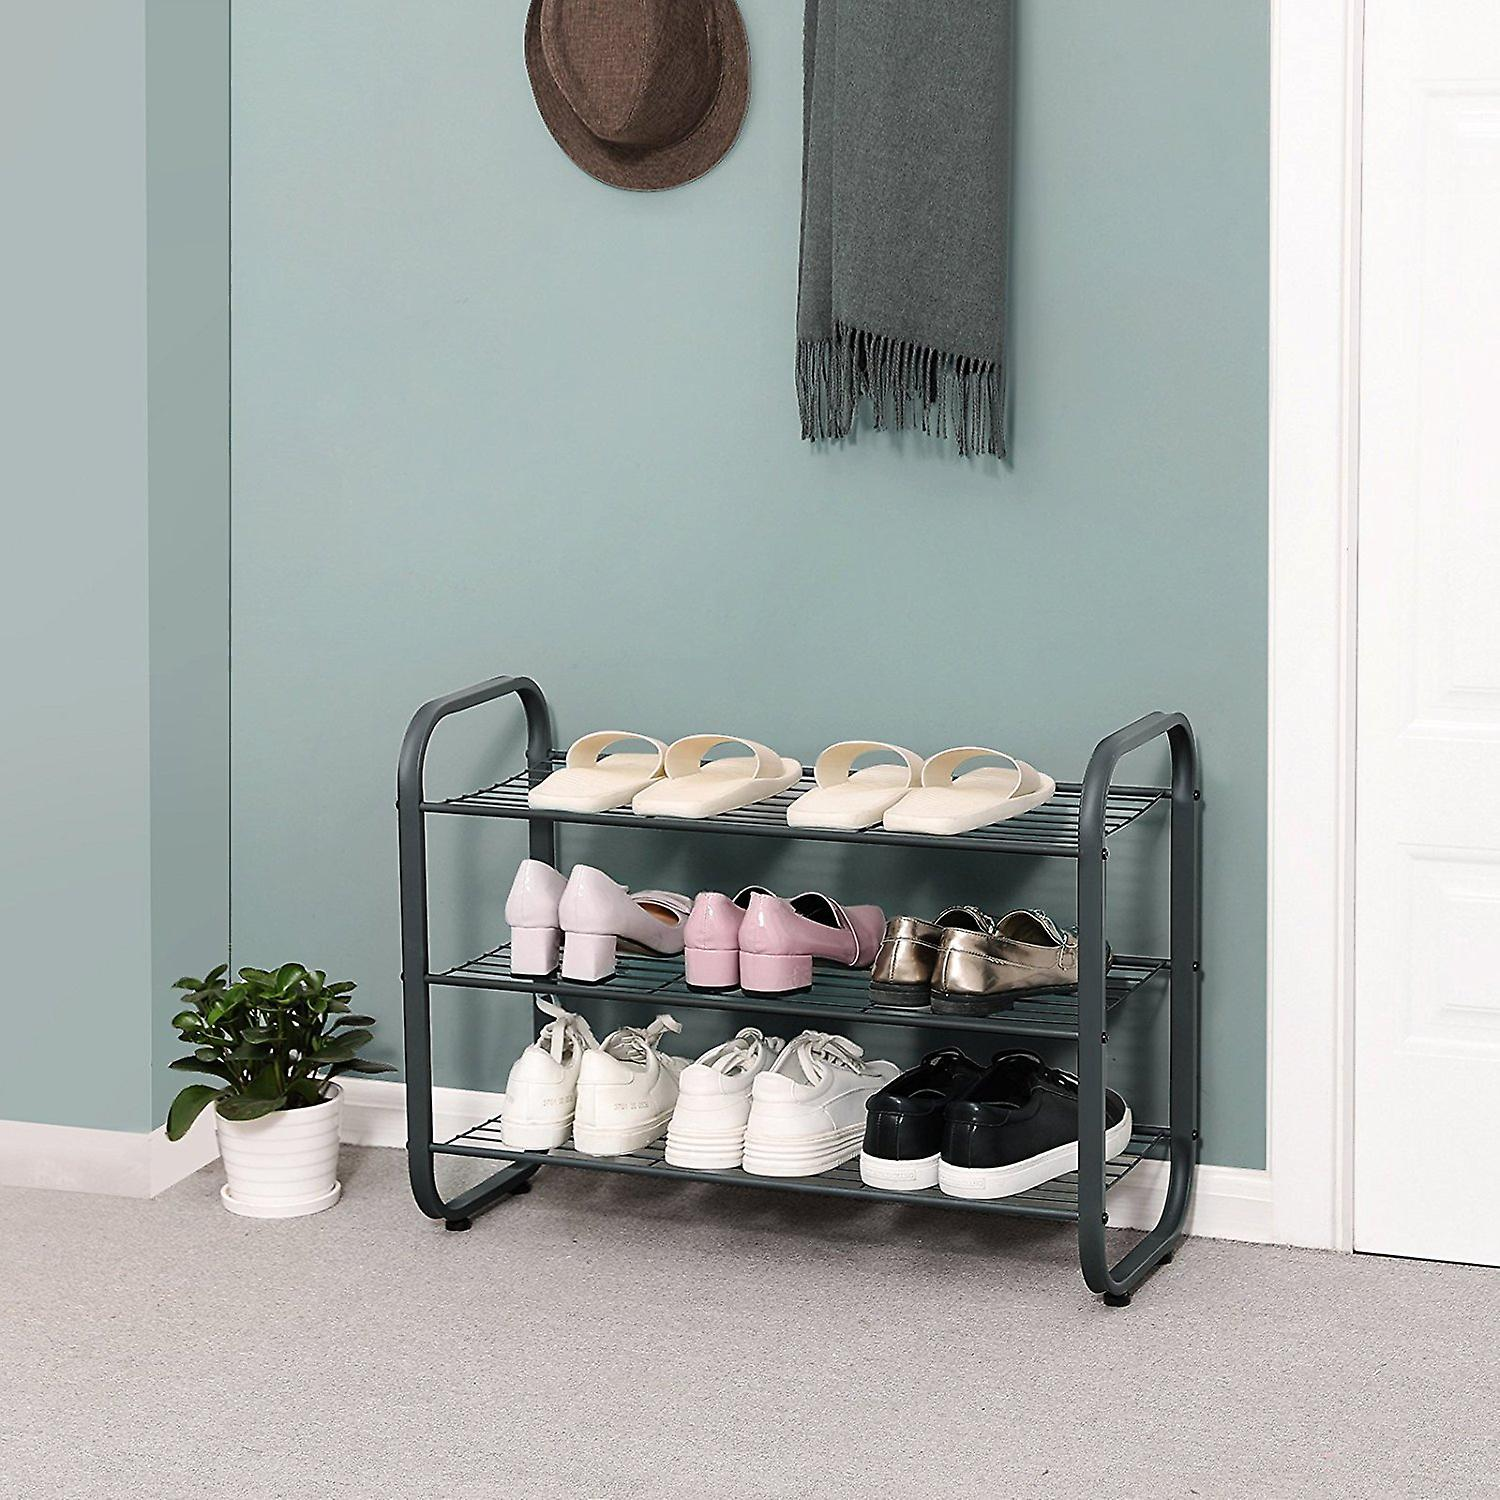 Shoe rack with 3 grilles-metal-grey